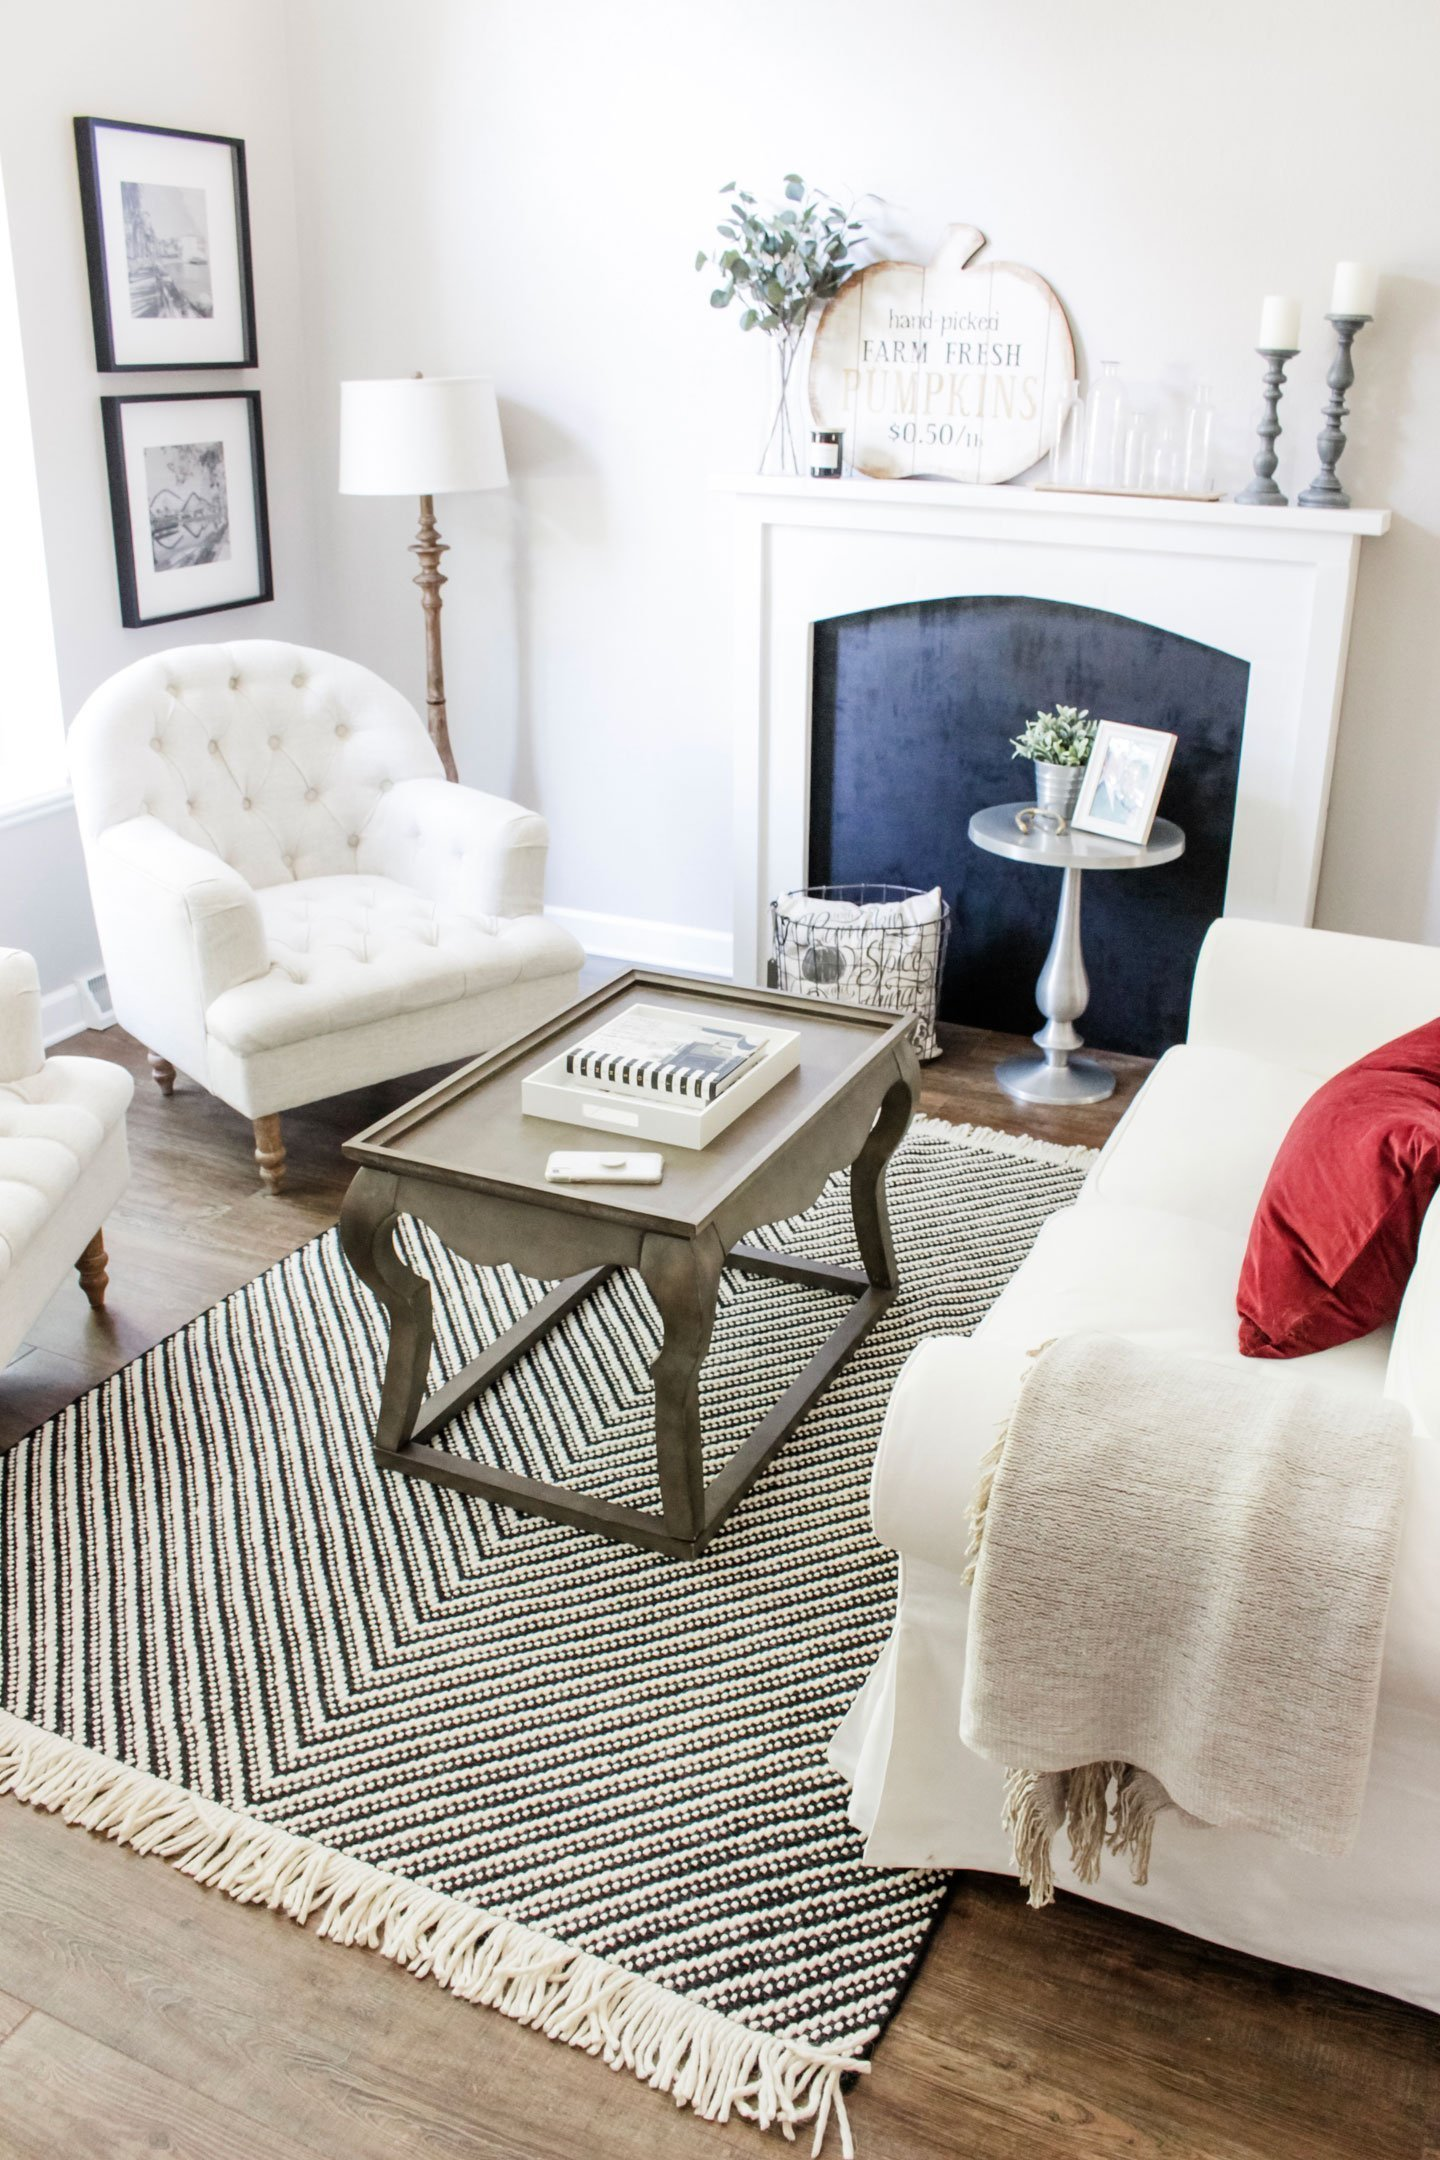 A Small Decor Change That Made a Big Impact_Target Project 62 black and white chevron rug